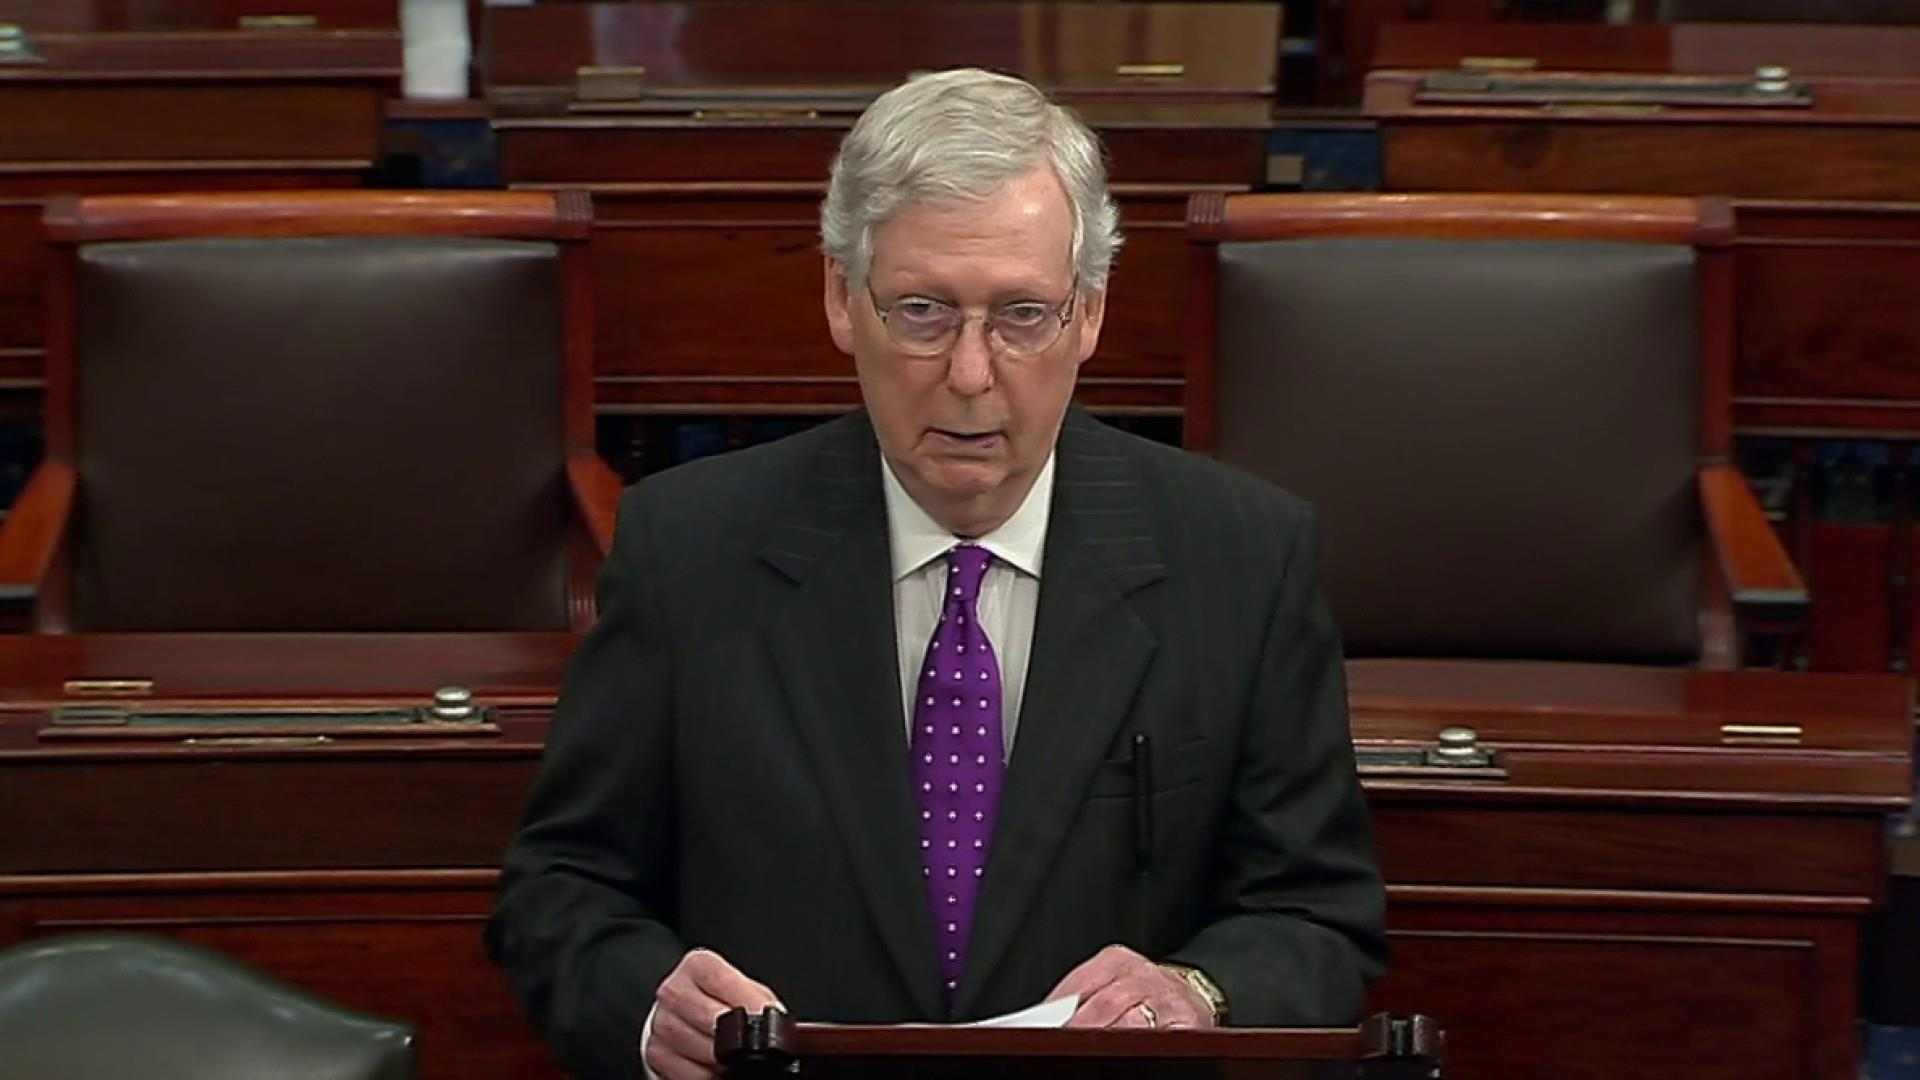 Ornstein: McConnell's admission is 'a flat violation of the oath he will take as a juror'